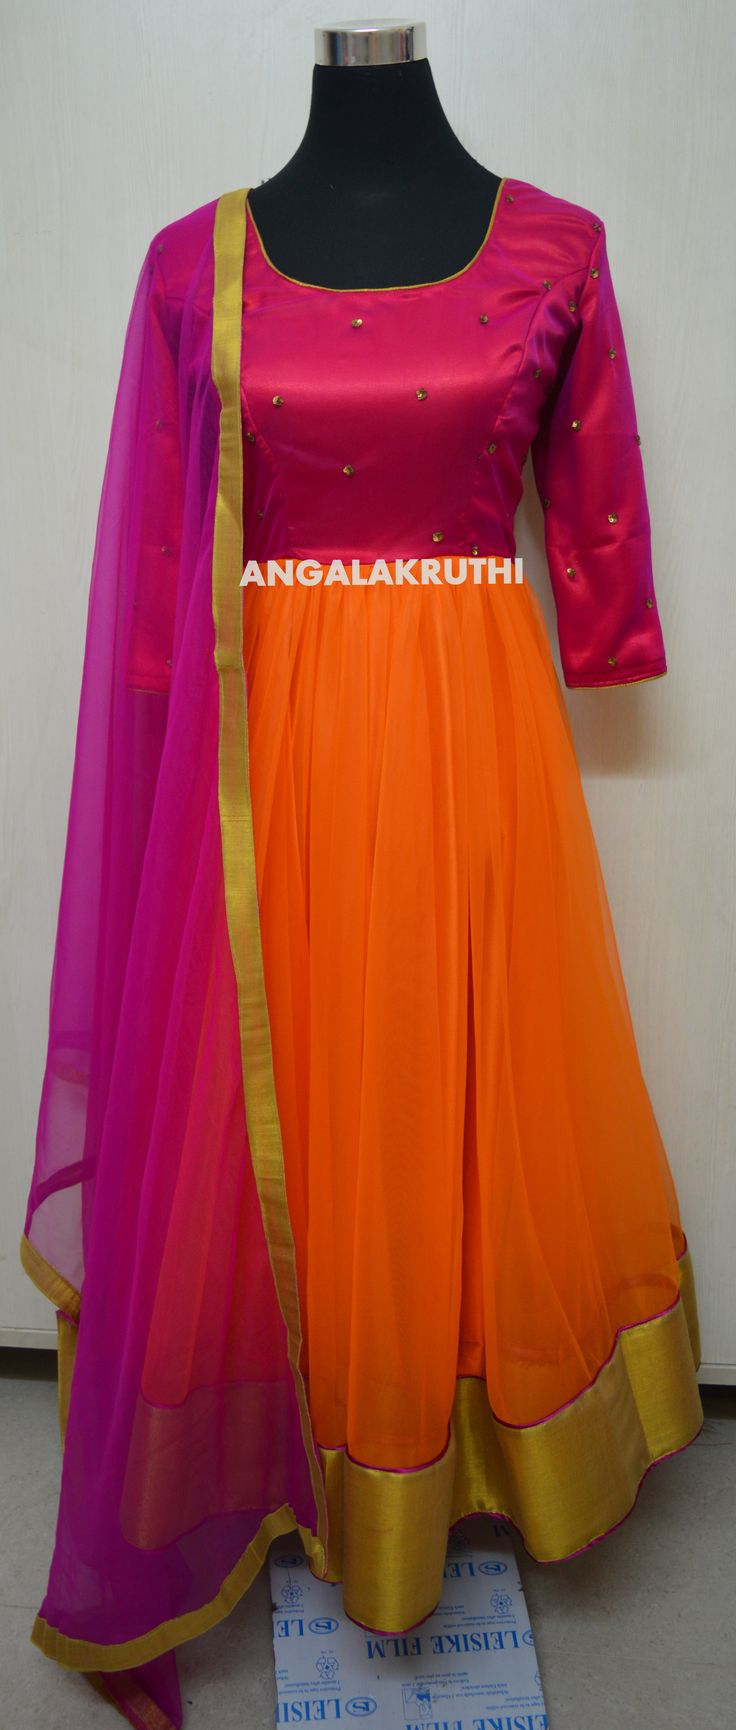 Angalakruthi-Ladies boutique in Bangalore  Custom design Anarkali by Angalakruthi